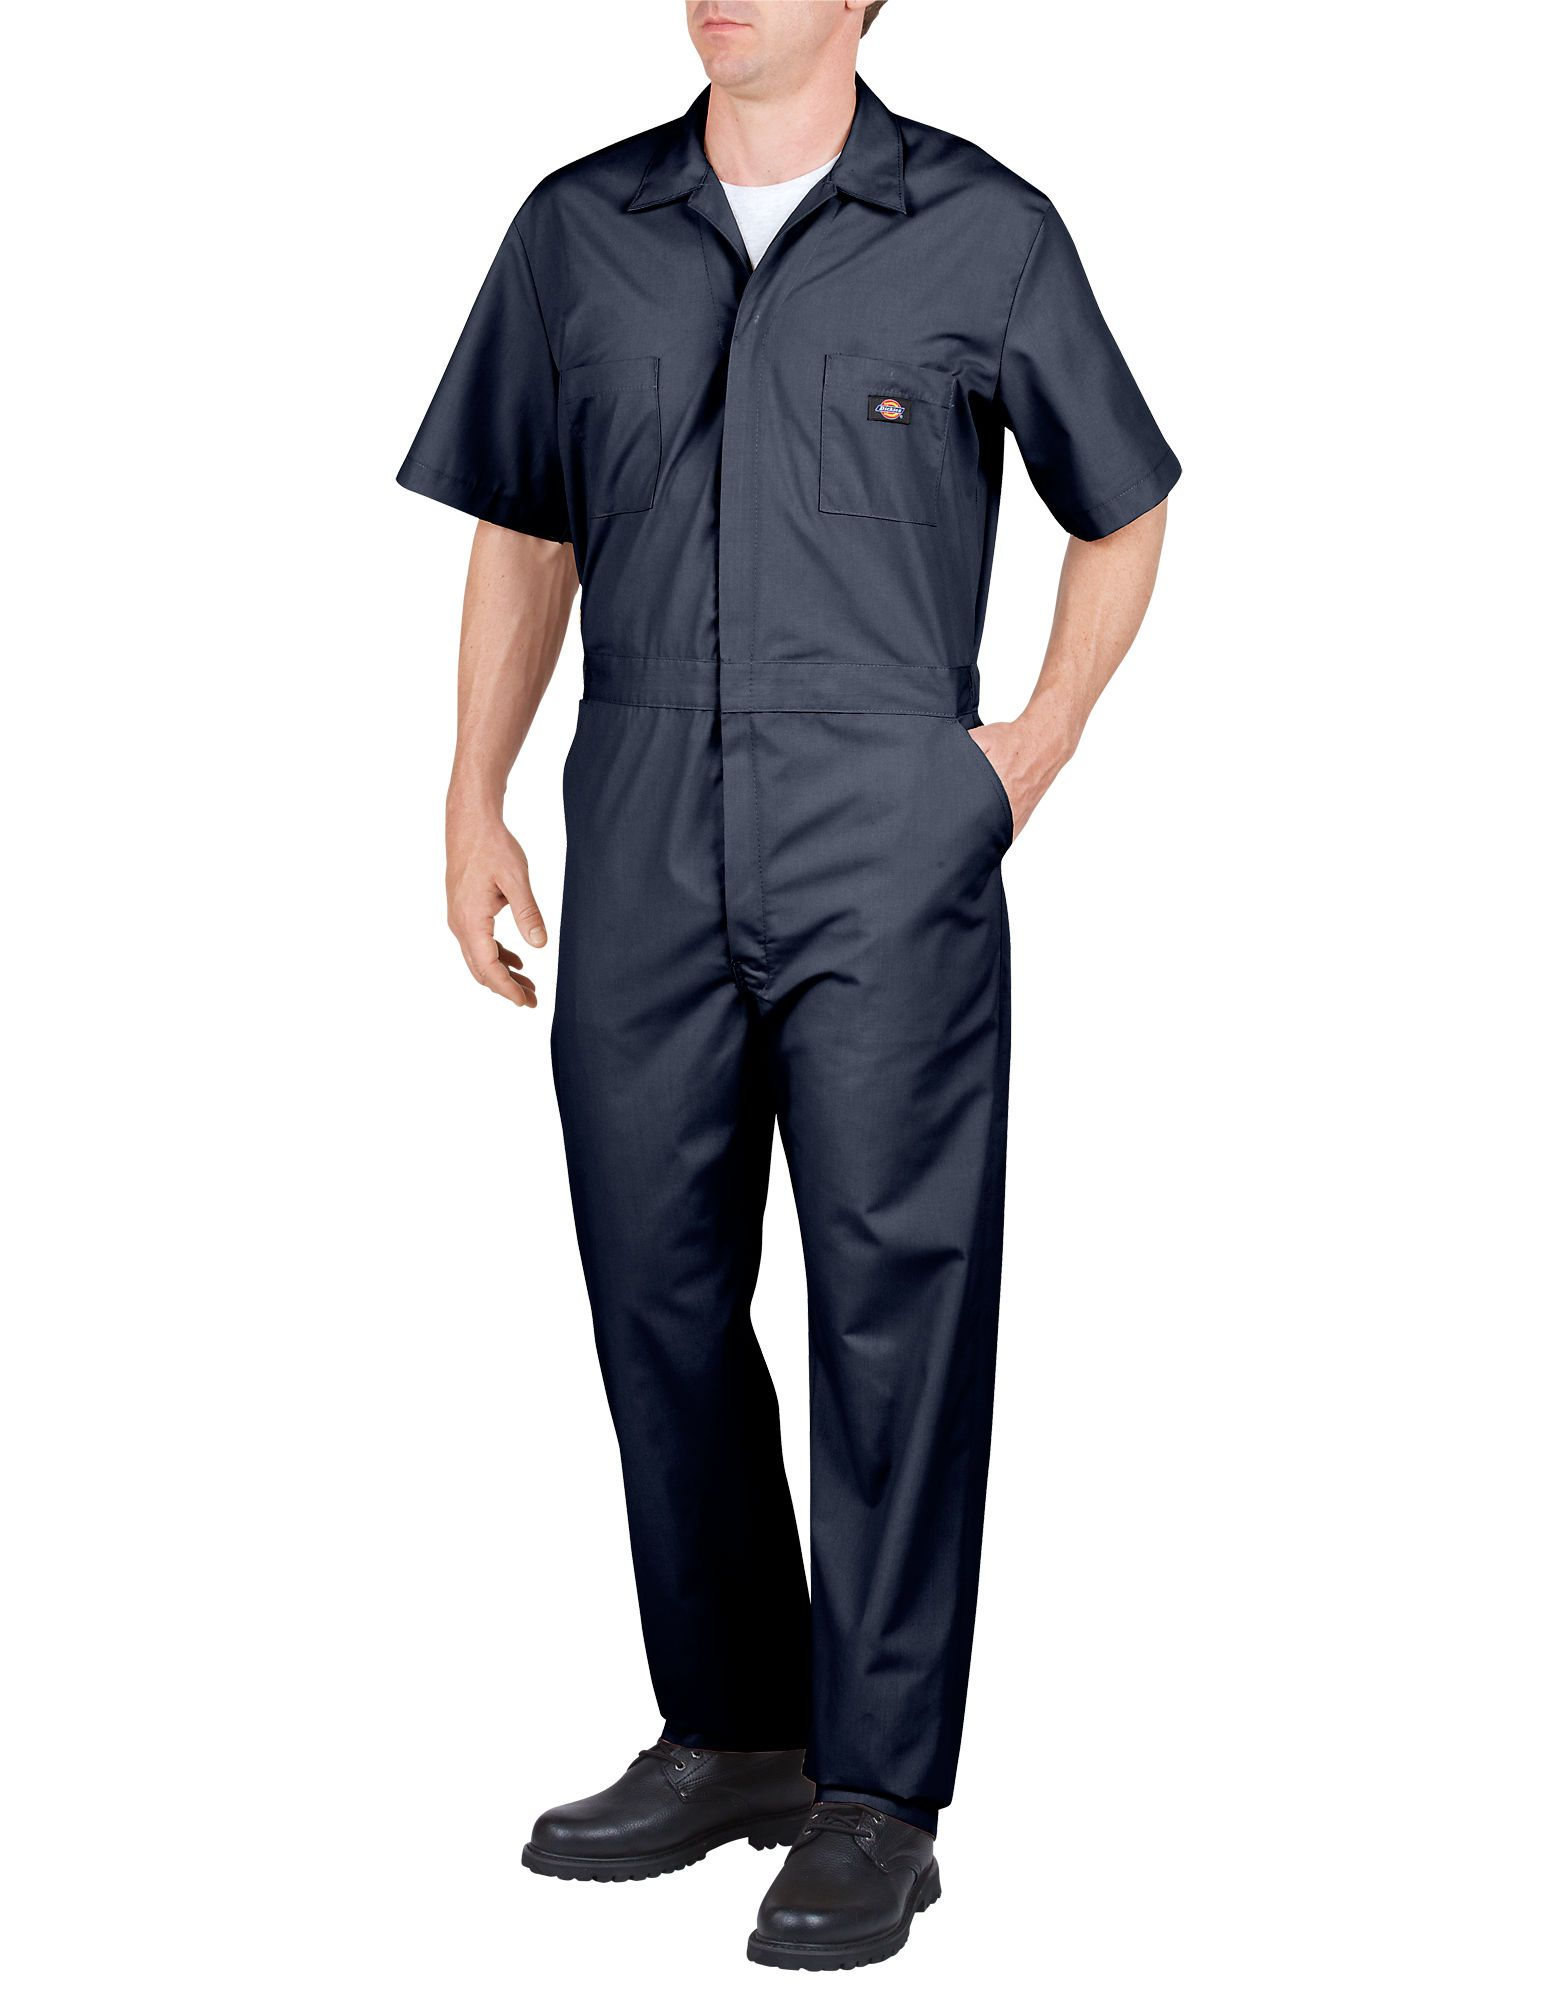 Short Sleeve Coveralls For Men Dark Navy Dickies Men Short Sleeve Dickies Coveralls Coveralls